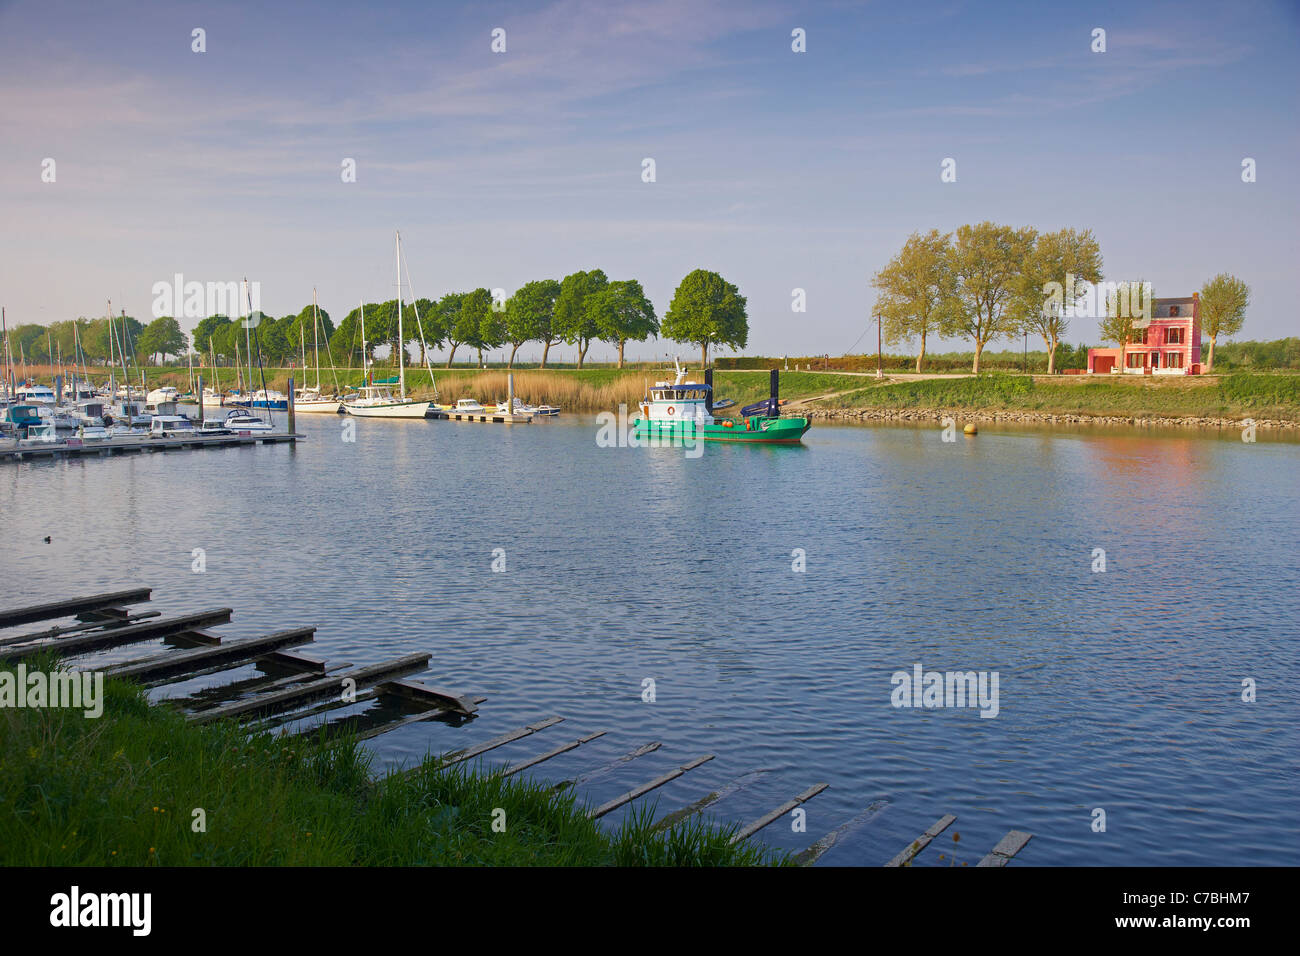 Late afternoon at the river at Saint-Valery-sur-Somme, Dept. Somme, Picardie, France, Europe - Stock Image